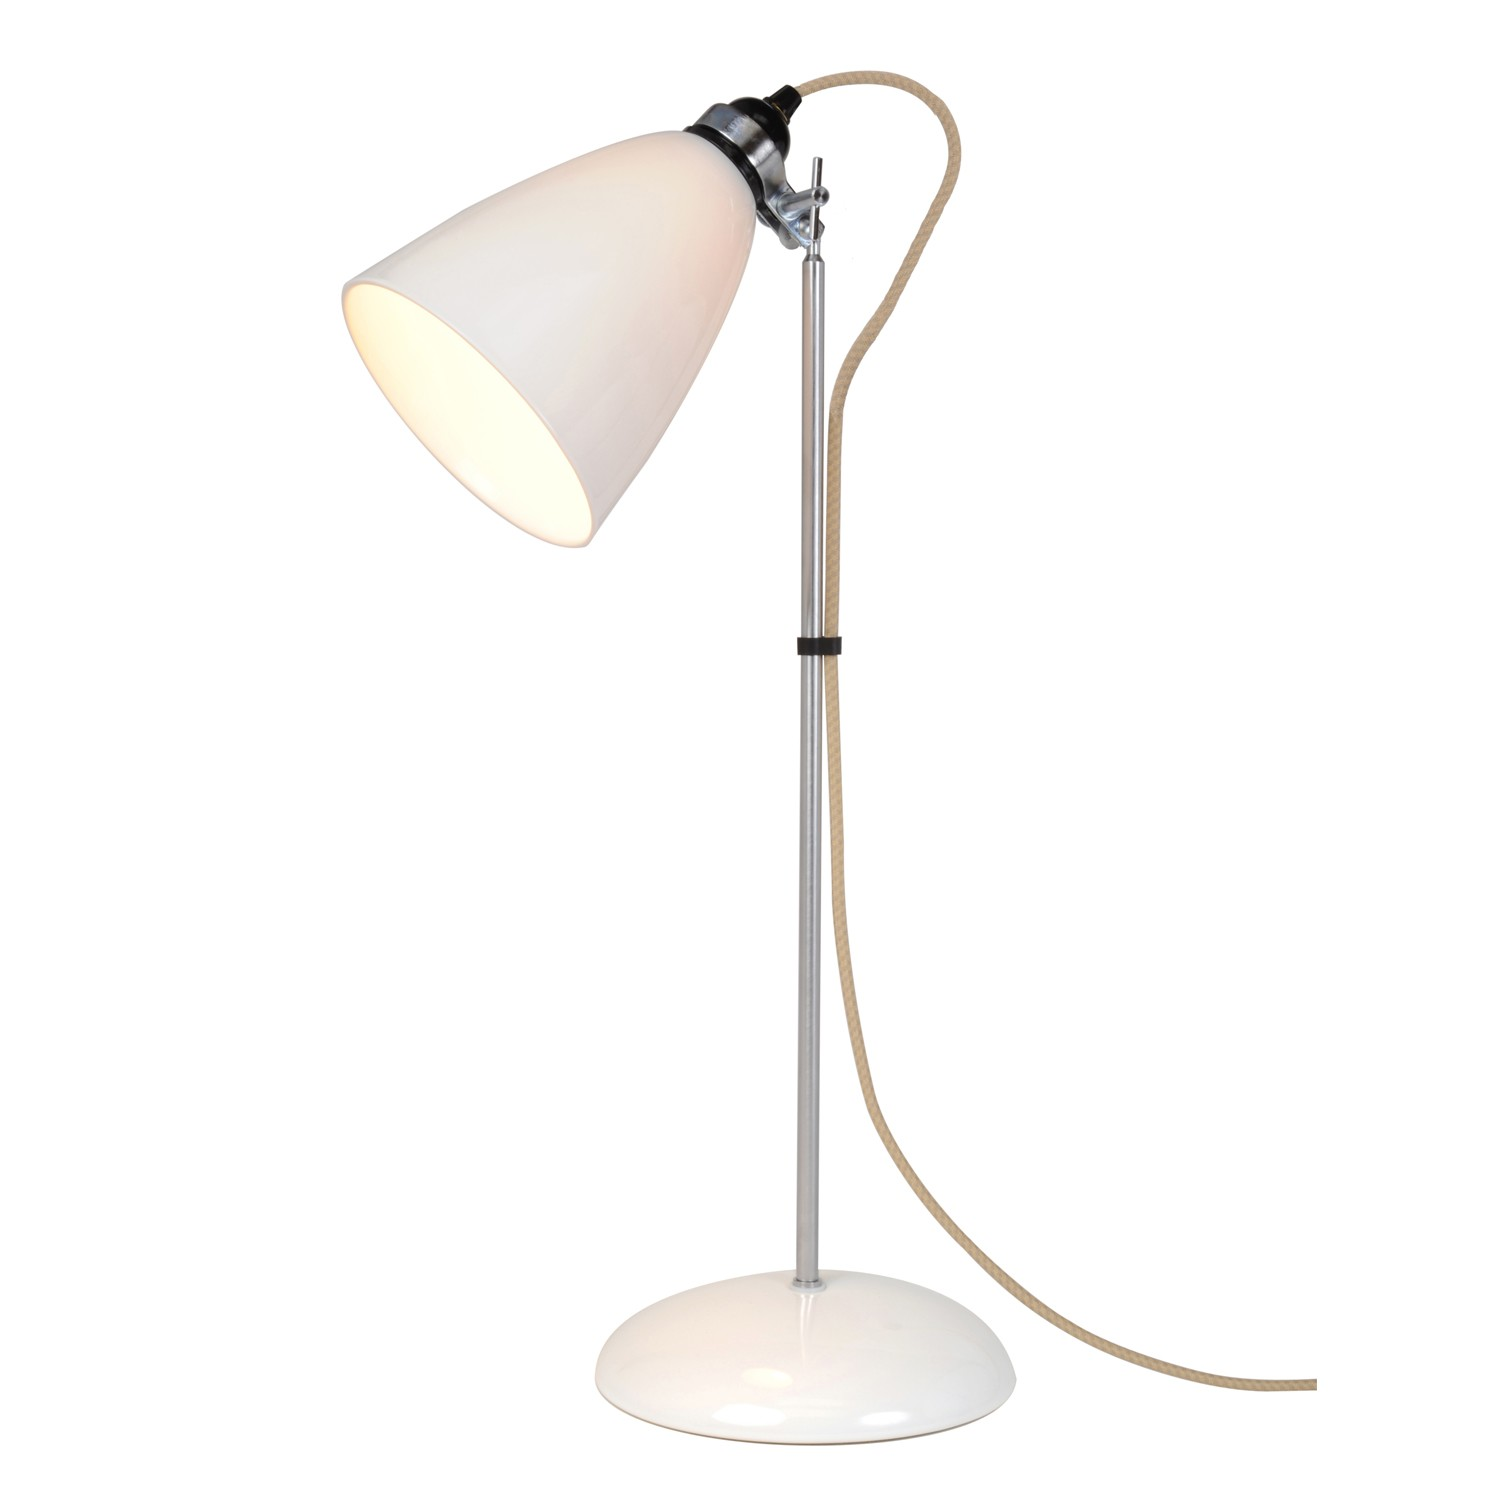 Hector Dome Table Lamp Natural White, Medium